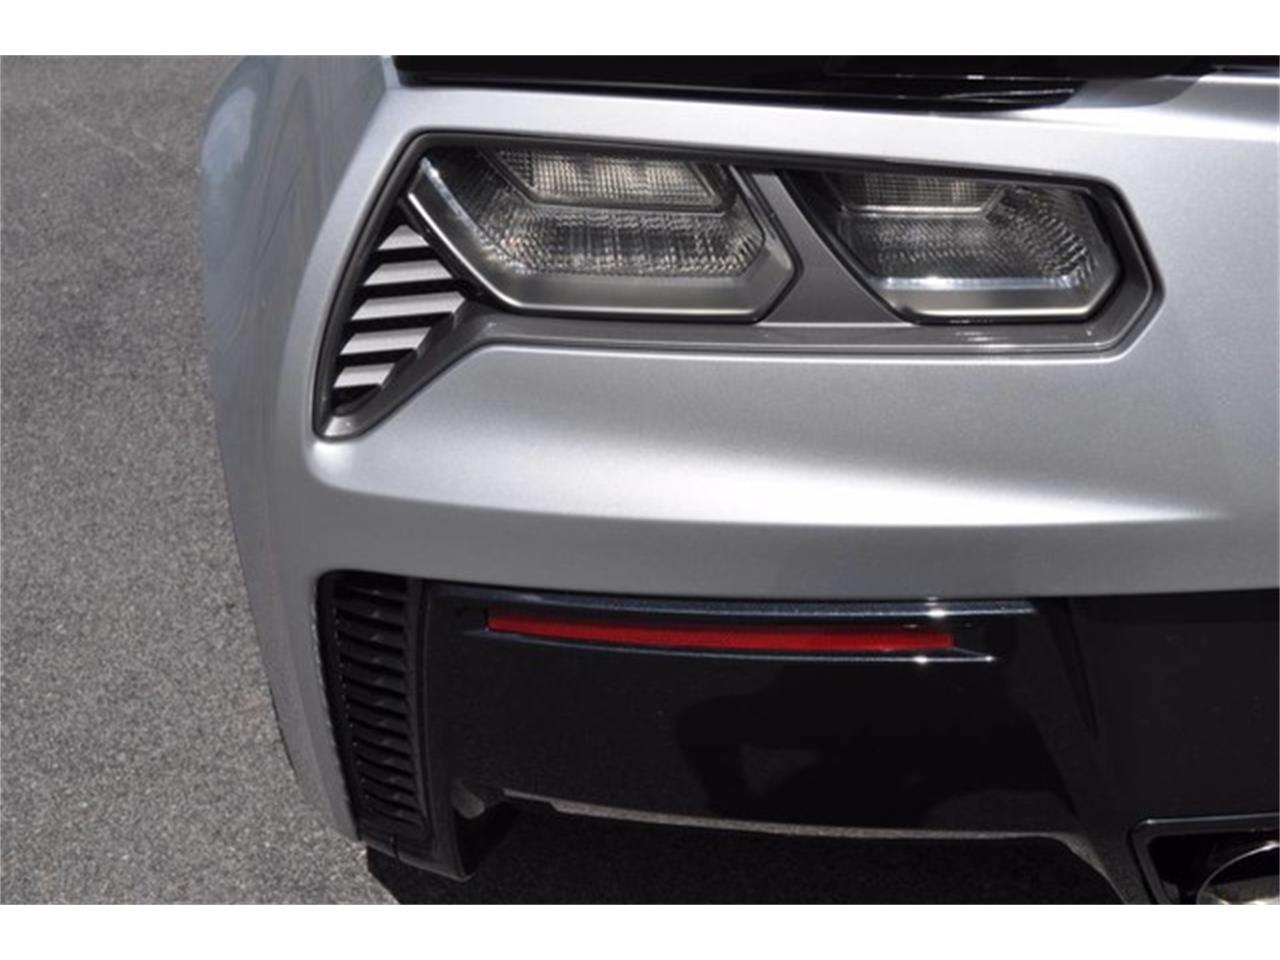 Large Picture of 2015 Chevrolet Corvette located in Clifton Park New York Auction Vehicle - LATH